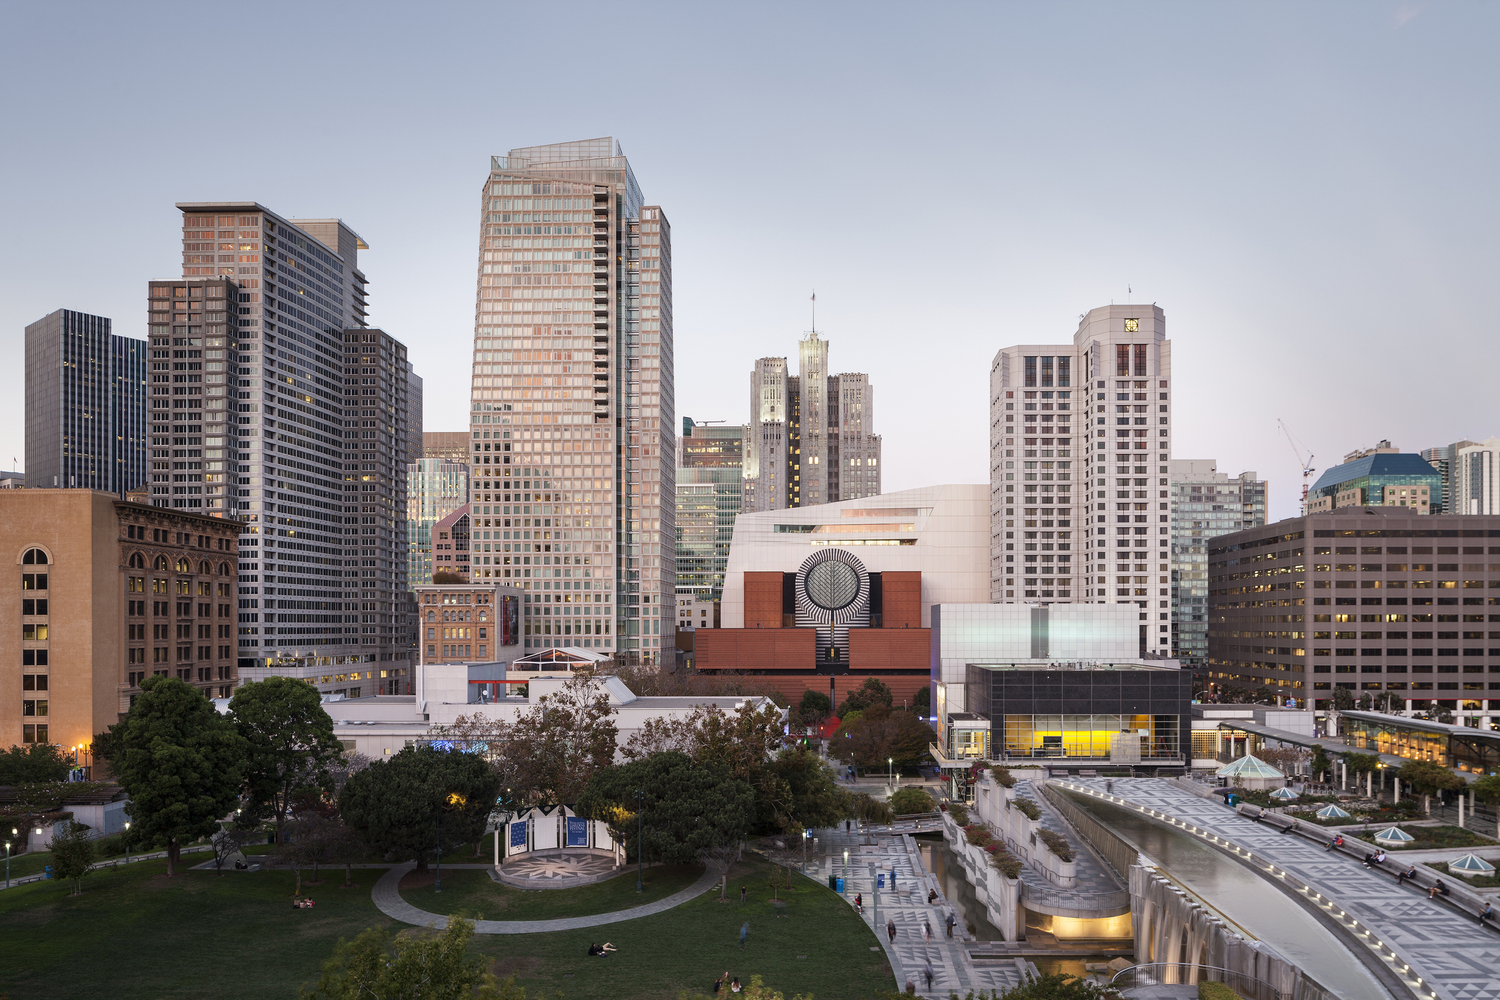 1._The_new_SFMOMA__view_from_Yerba_Buena_Gardens__photo_©_Henrik_Kam__courtesy_SFMOMA